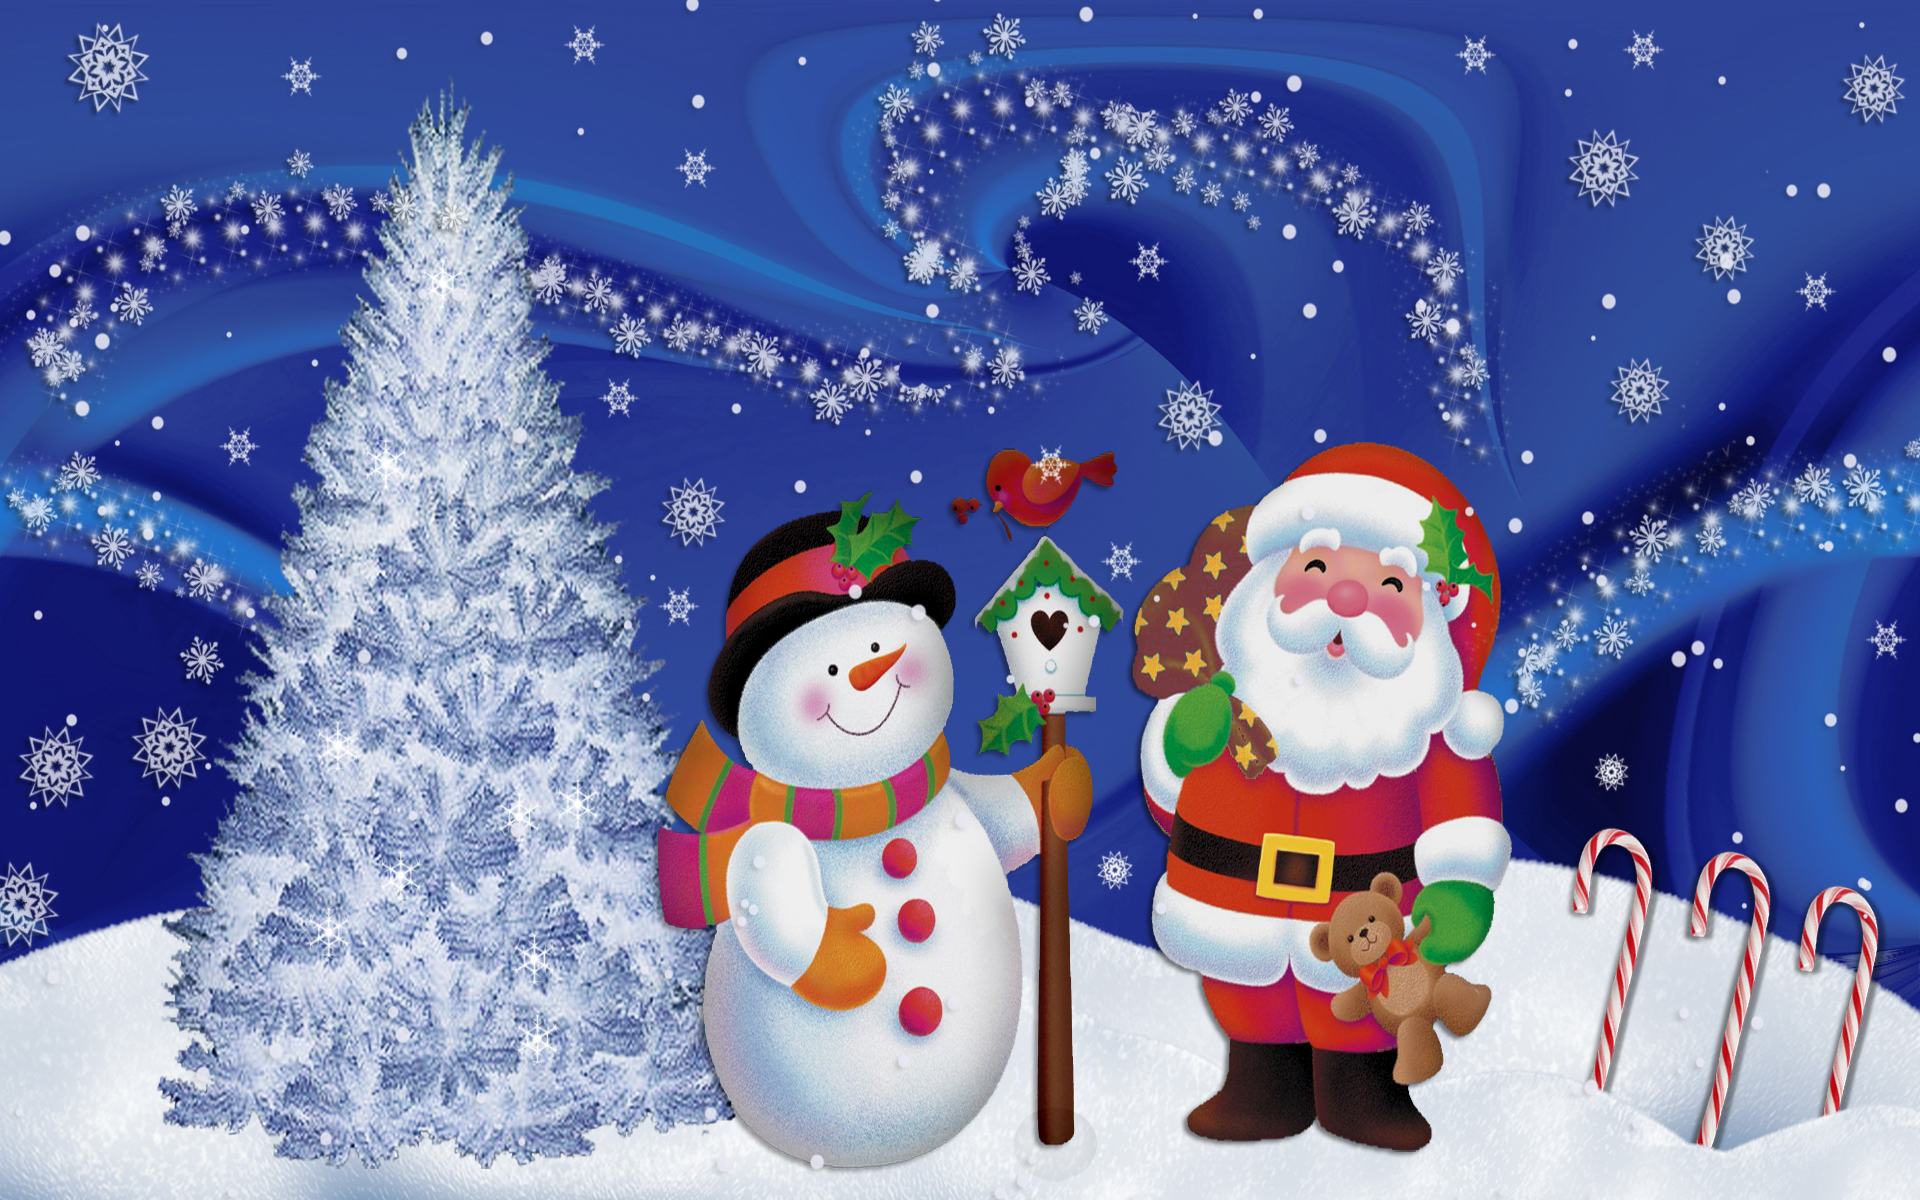 Cute Animated Merry Christmas Wallpapers – Happy Holidays!